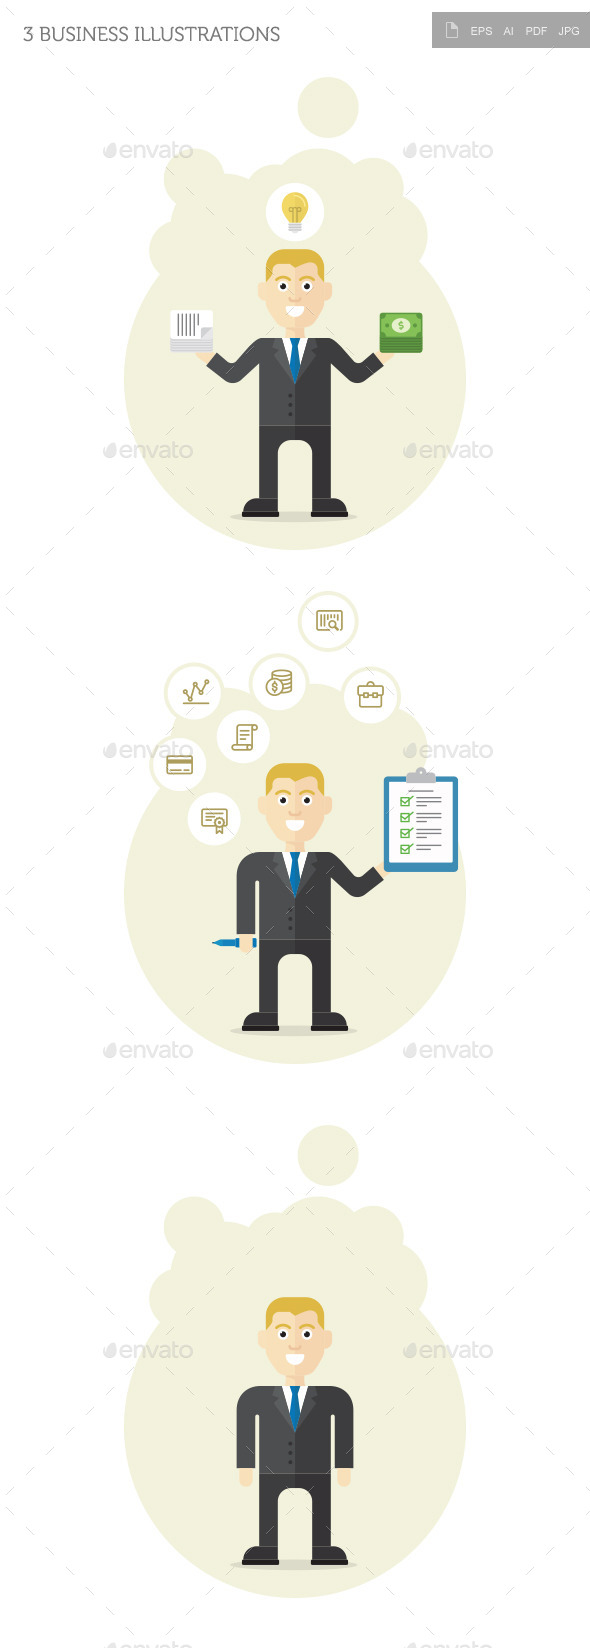 GraphicRiver 3 Business Illustrations 10563039